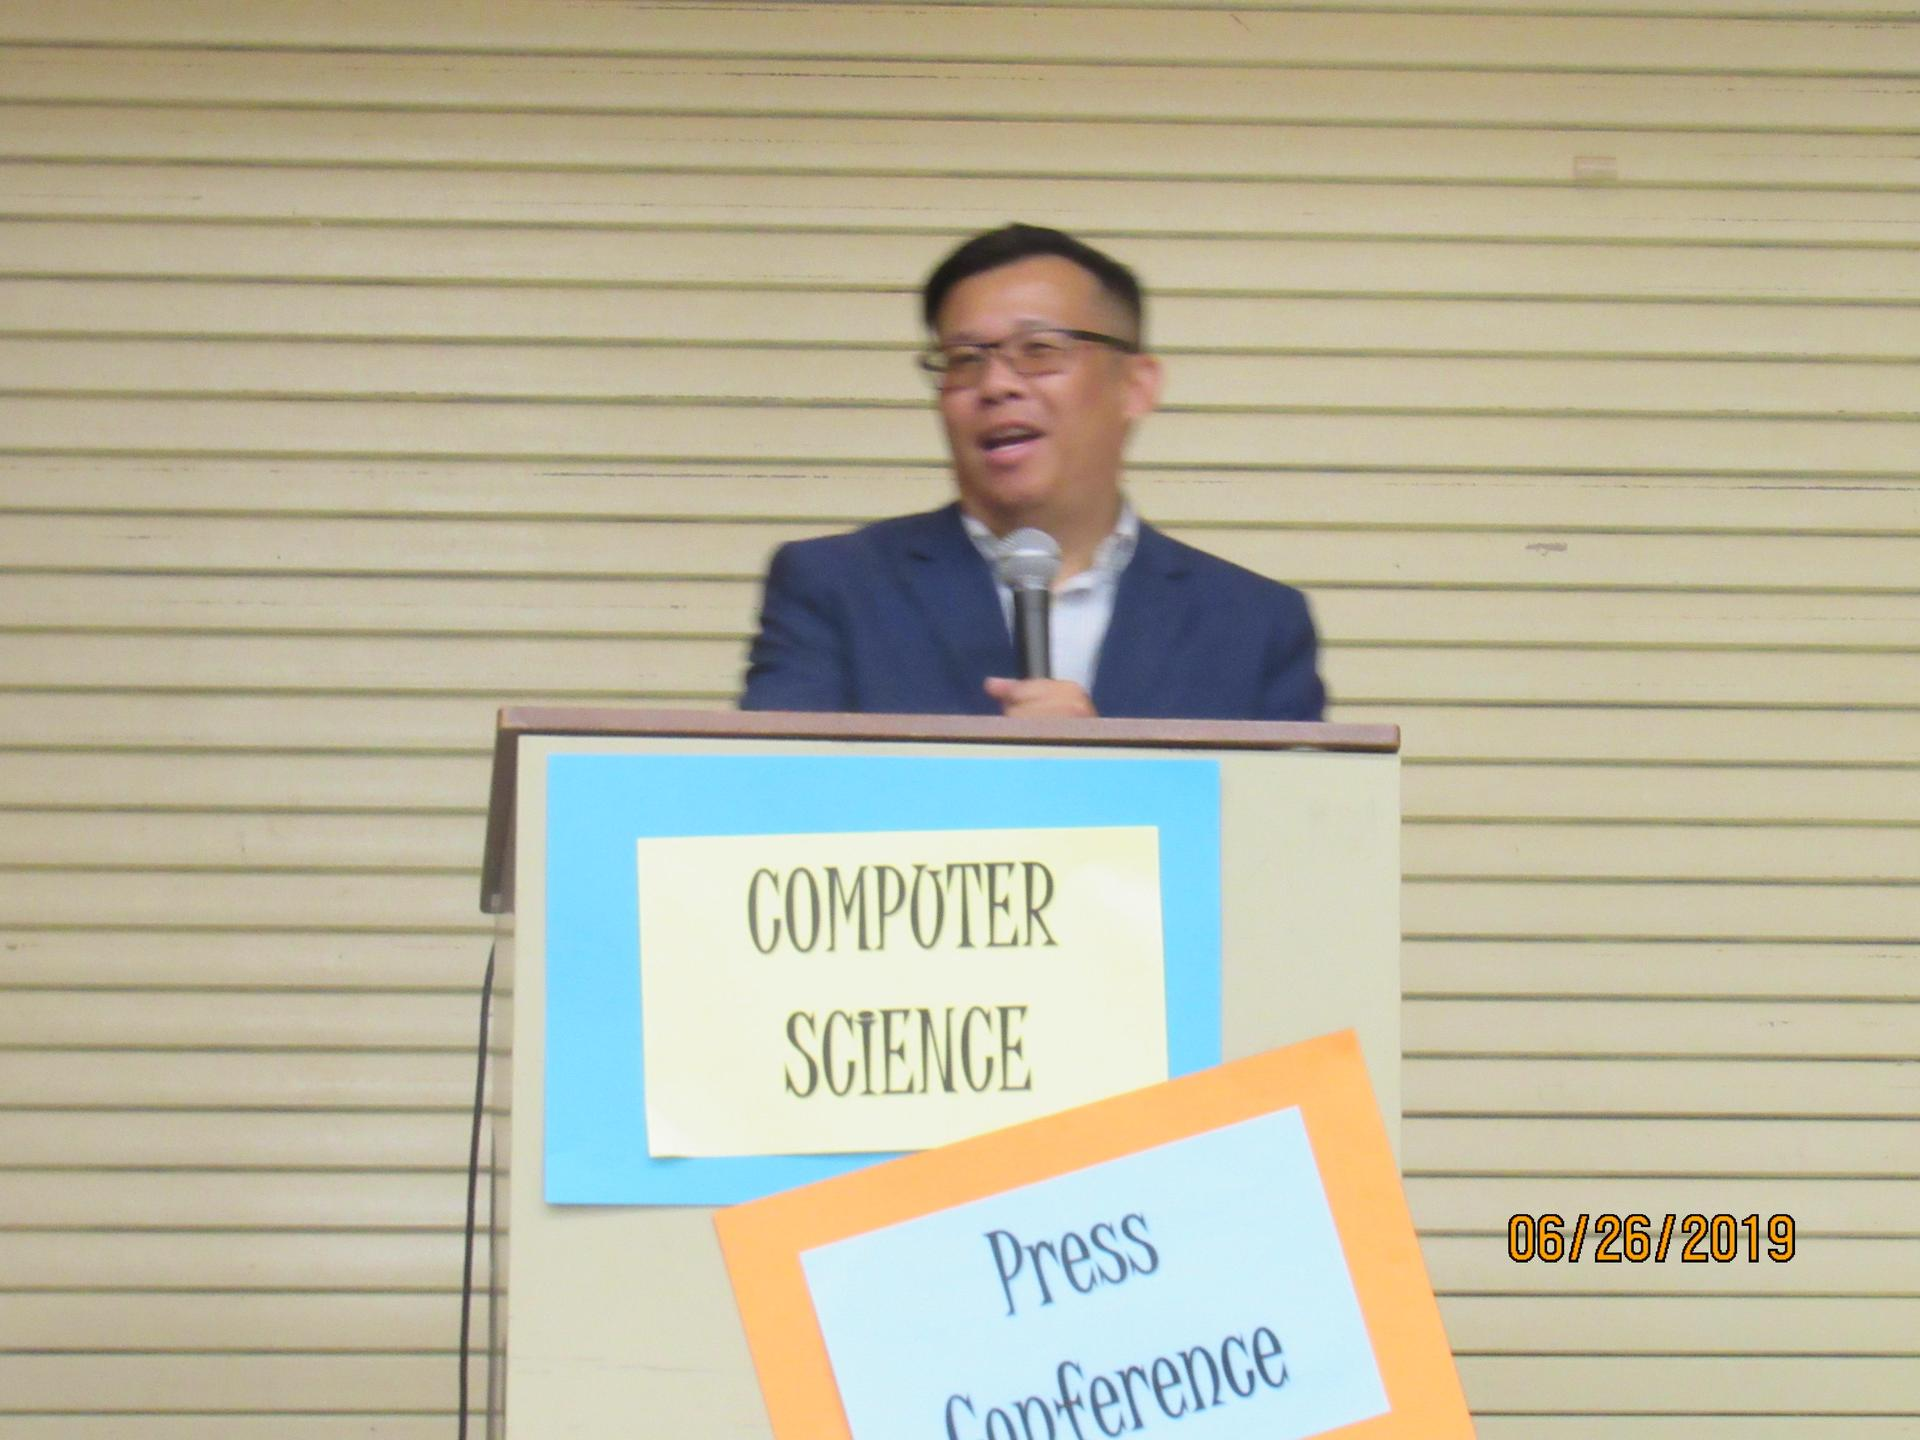 2019 Computer Science Press Conference